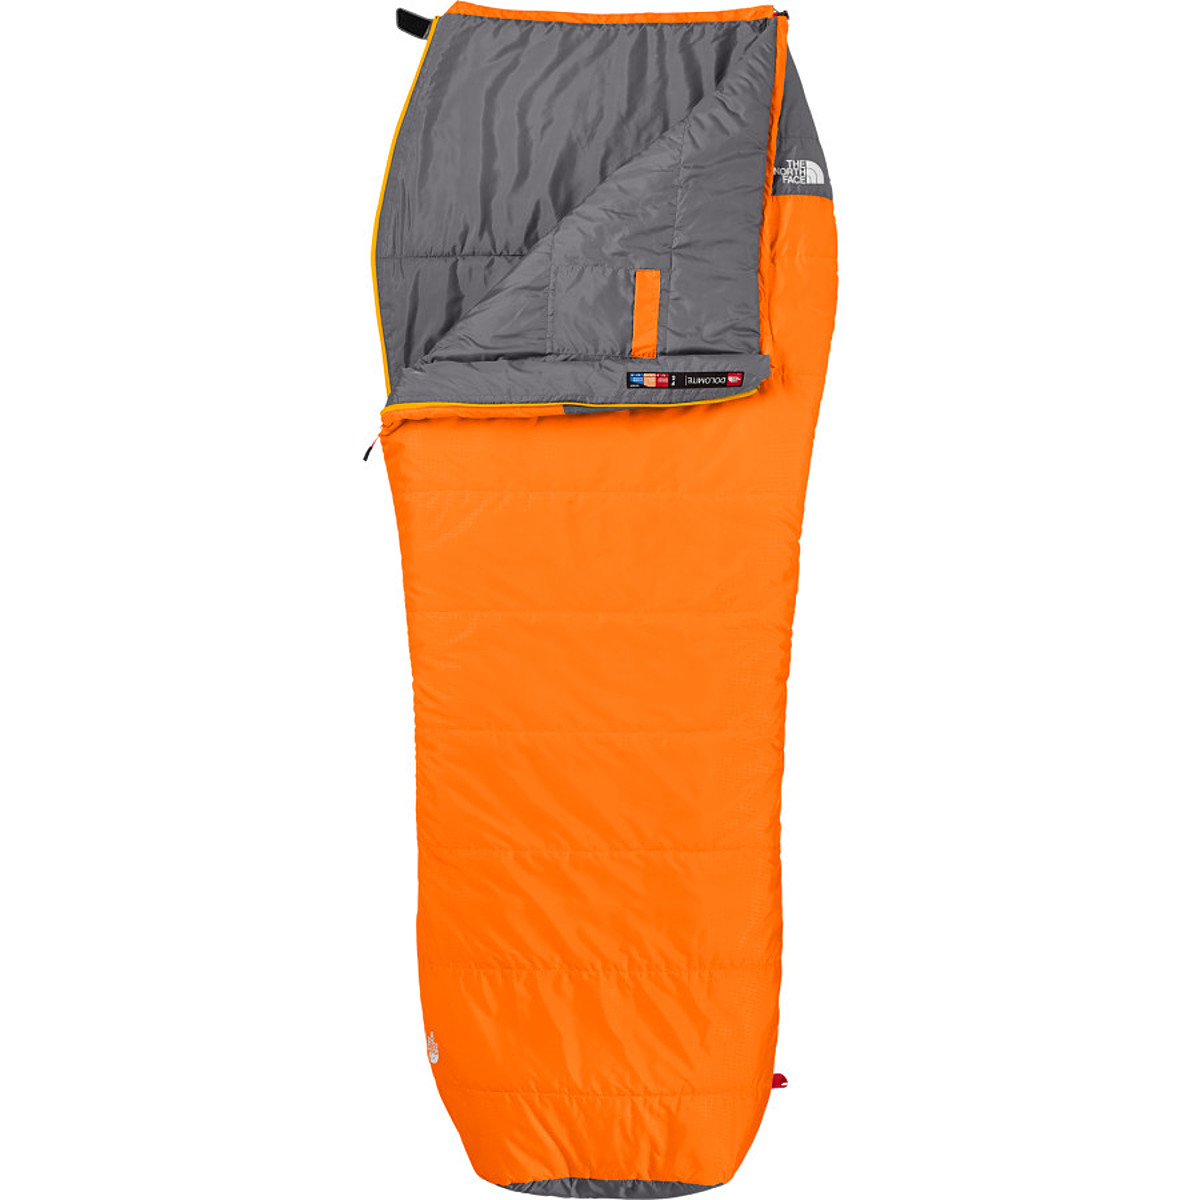 The North Face Dolomite 40/4